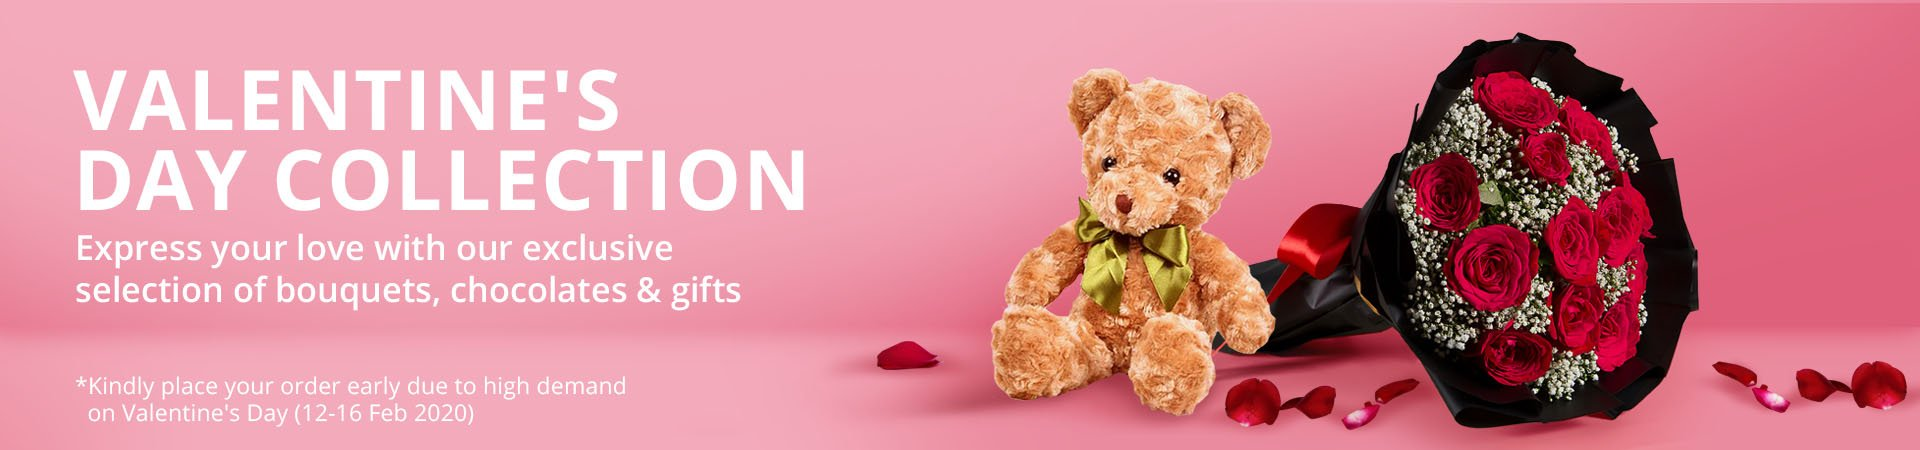 Valentine's Day Flower Delivery | Flower Chimp